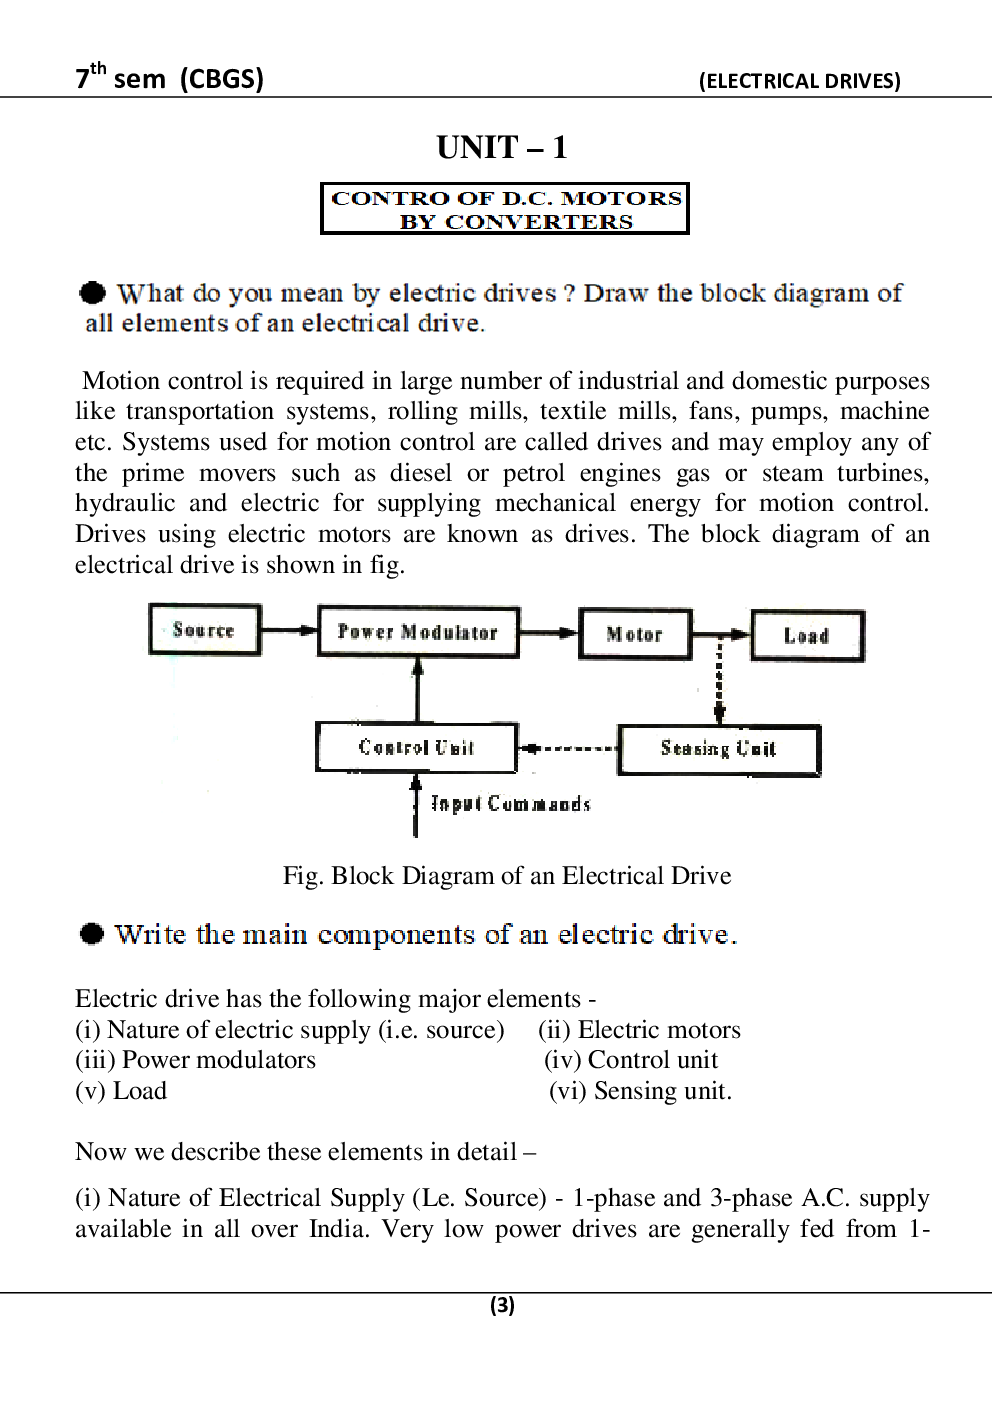 Electrical Drives For RGPV B.E. 7th Sem Computer Science Engineering - Page 4